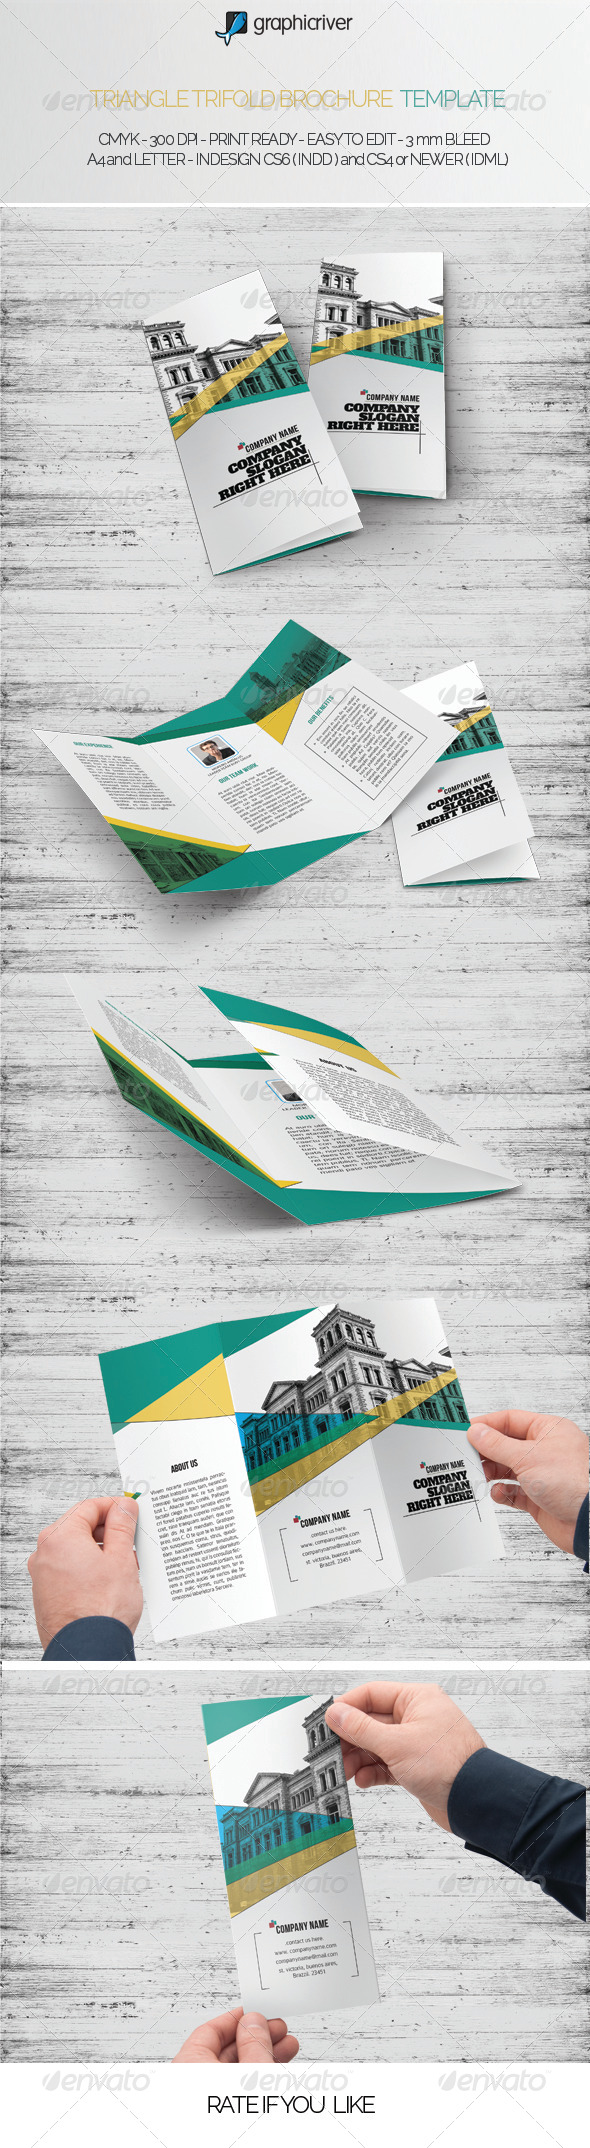 Triangle Trifold Brochure Template - Brochures Print Templates